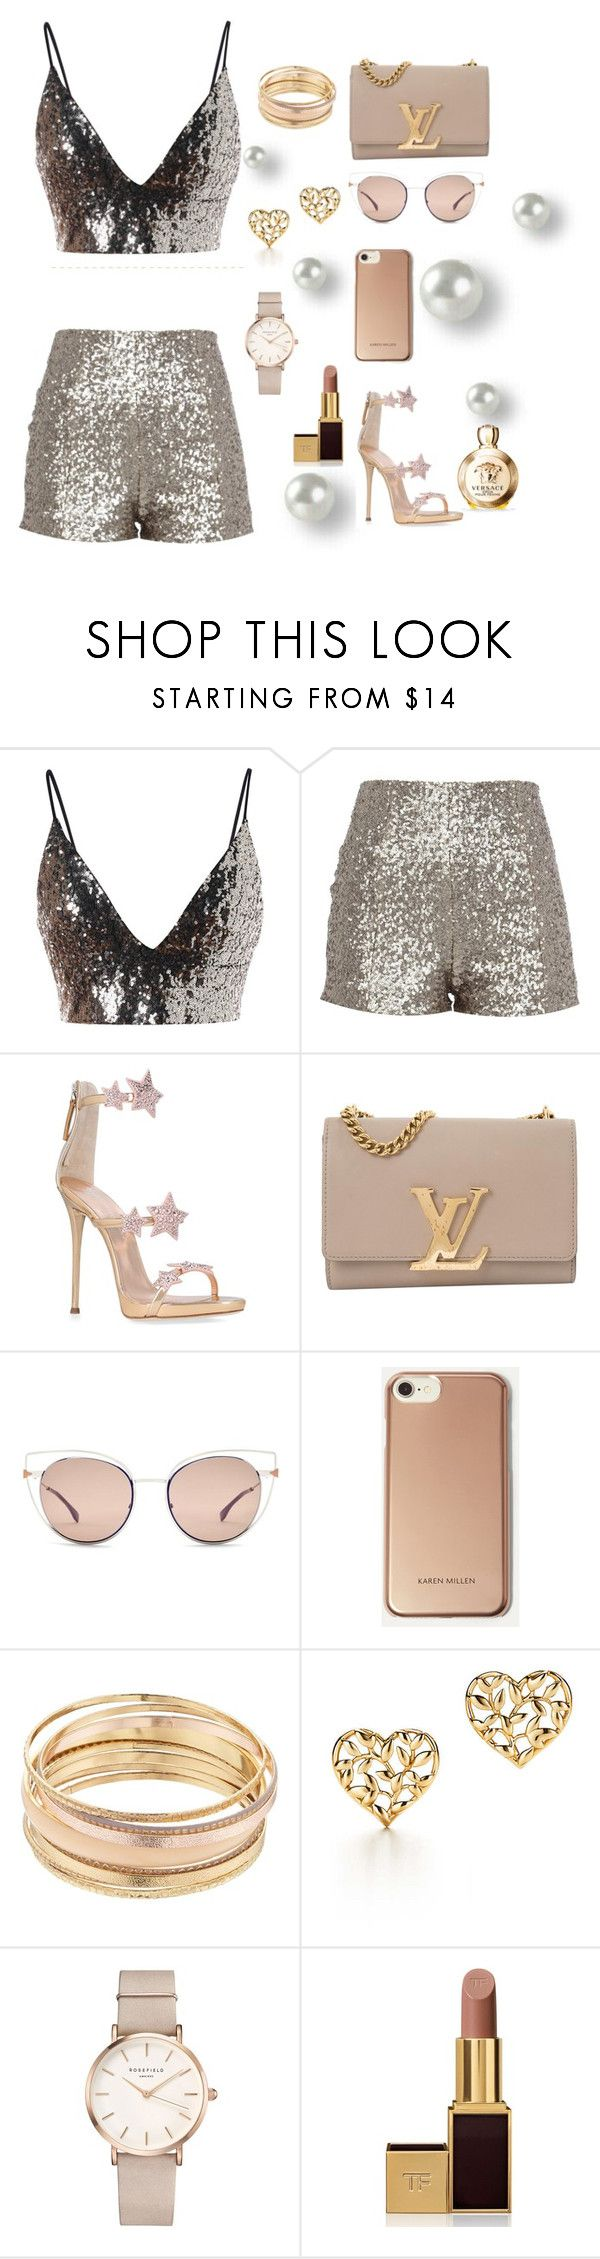 """Untitled #196"" by mmmmrrrr ❤ liked on Polyvore featuring Giuseppe Zanotti, Louis Vuitton, Fendi, Karen Millen, Mudd, Paloma Picasso, ROSEFIELD, Tom Ford and Versace"